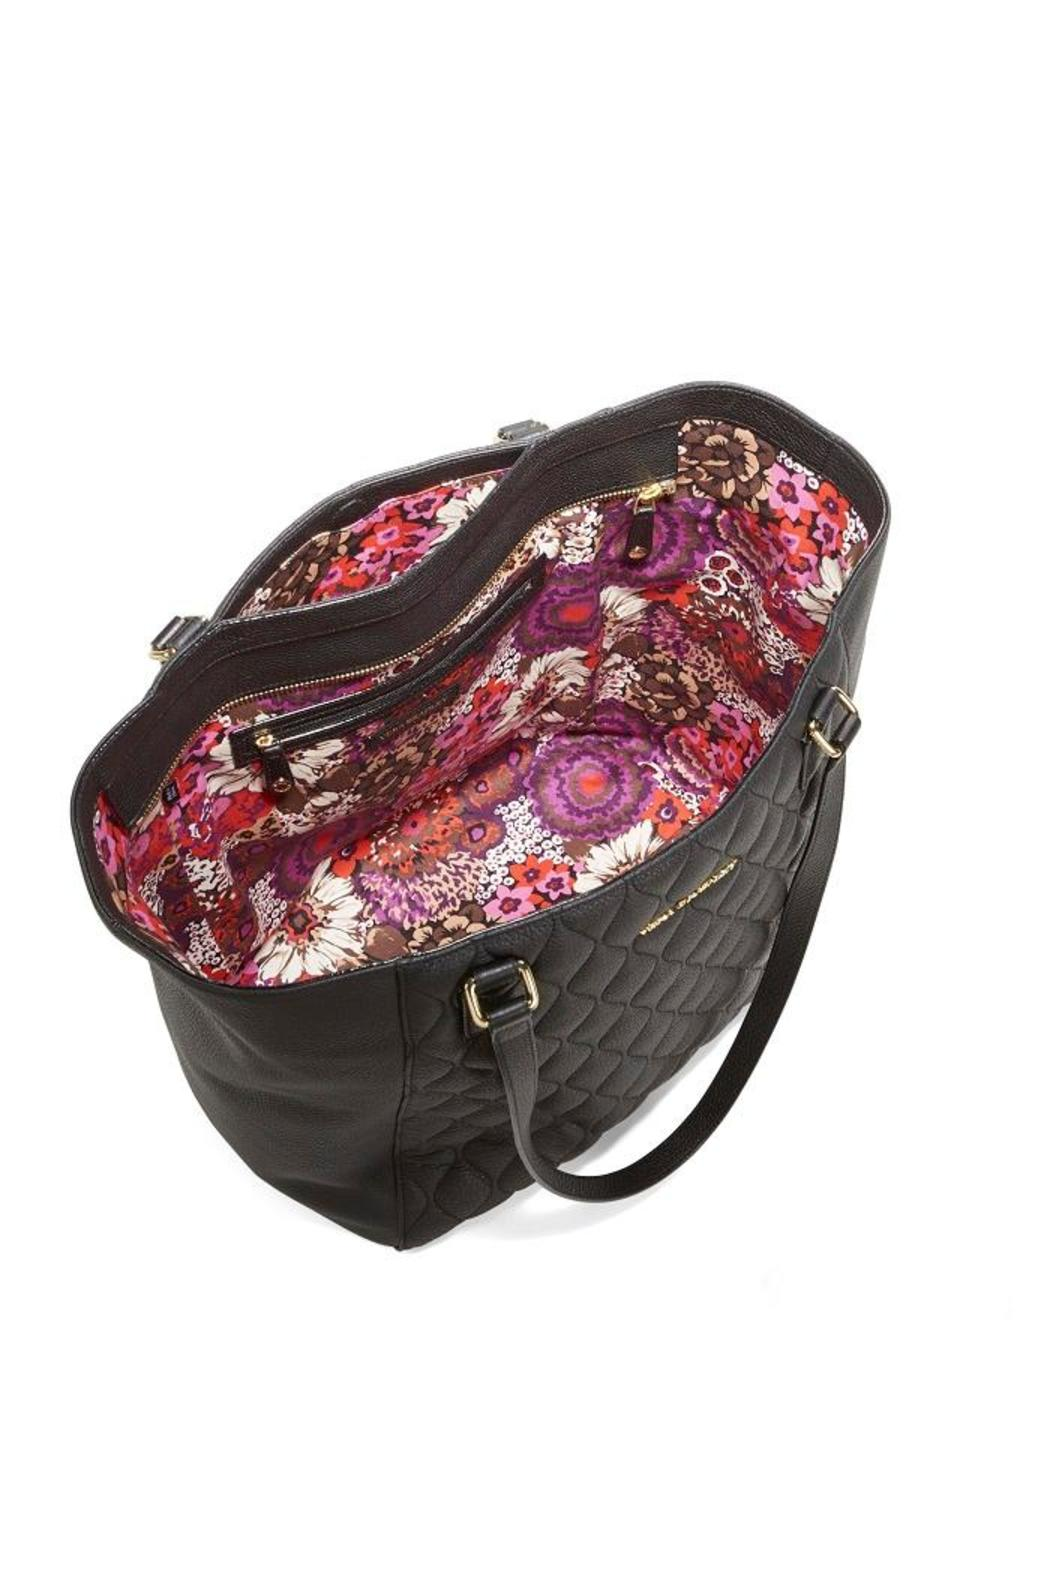 fe411446d7e4 Vera Bradley Quilted Ella Tote from Wisconsin by Wilkins   Olander ...